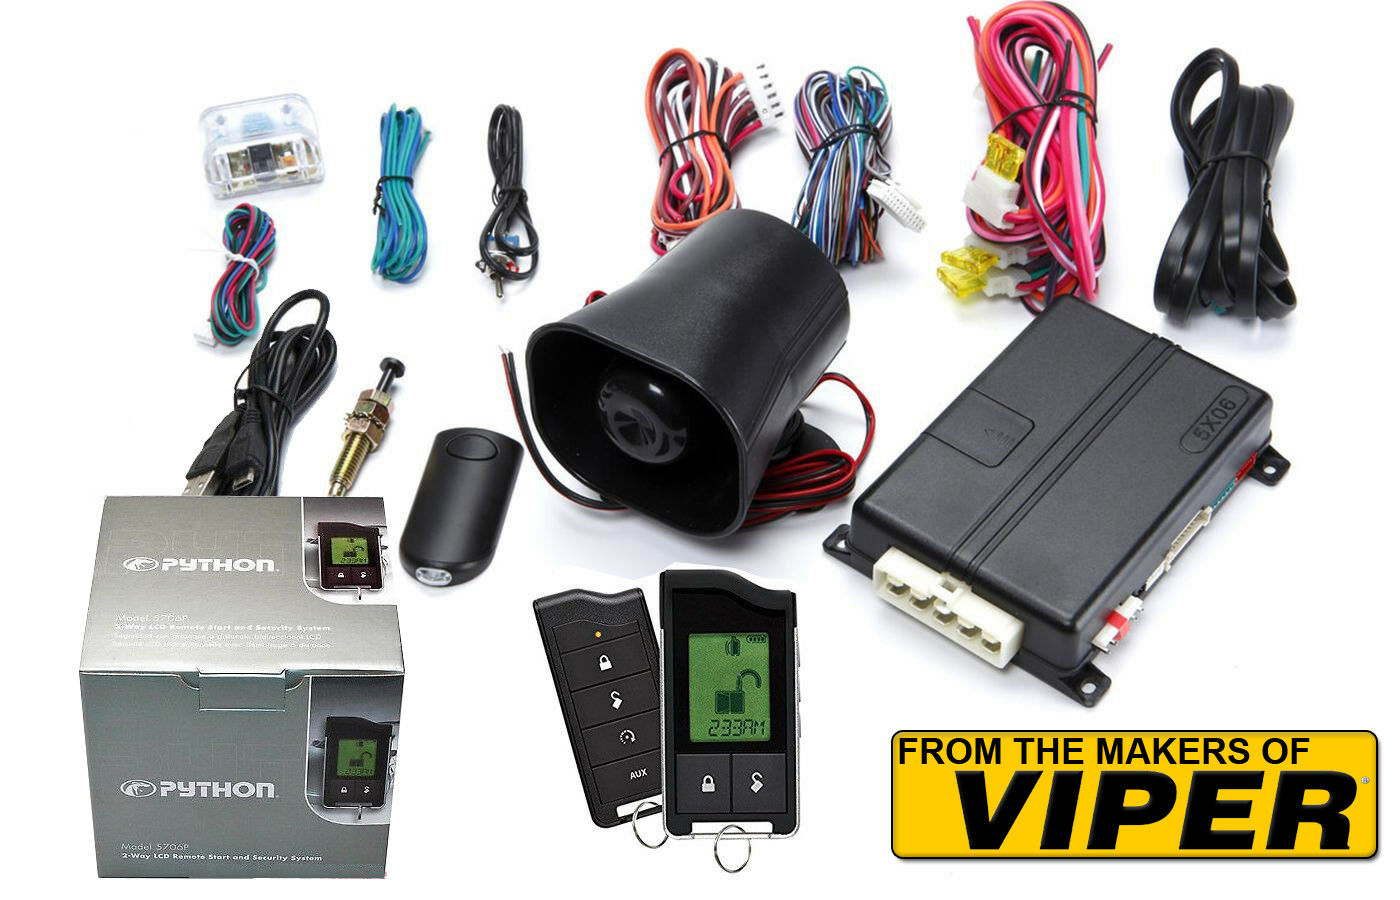 The Creators Of Viper Python 5706p 2 Way Lcd Car Alarm Remote Start Wiring Diagram For 5706v System 1 4free Shipping See More